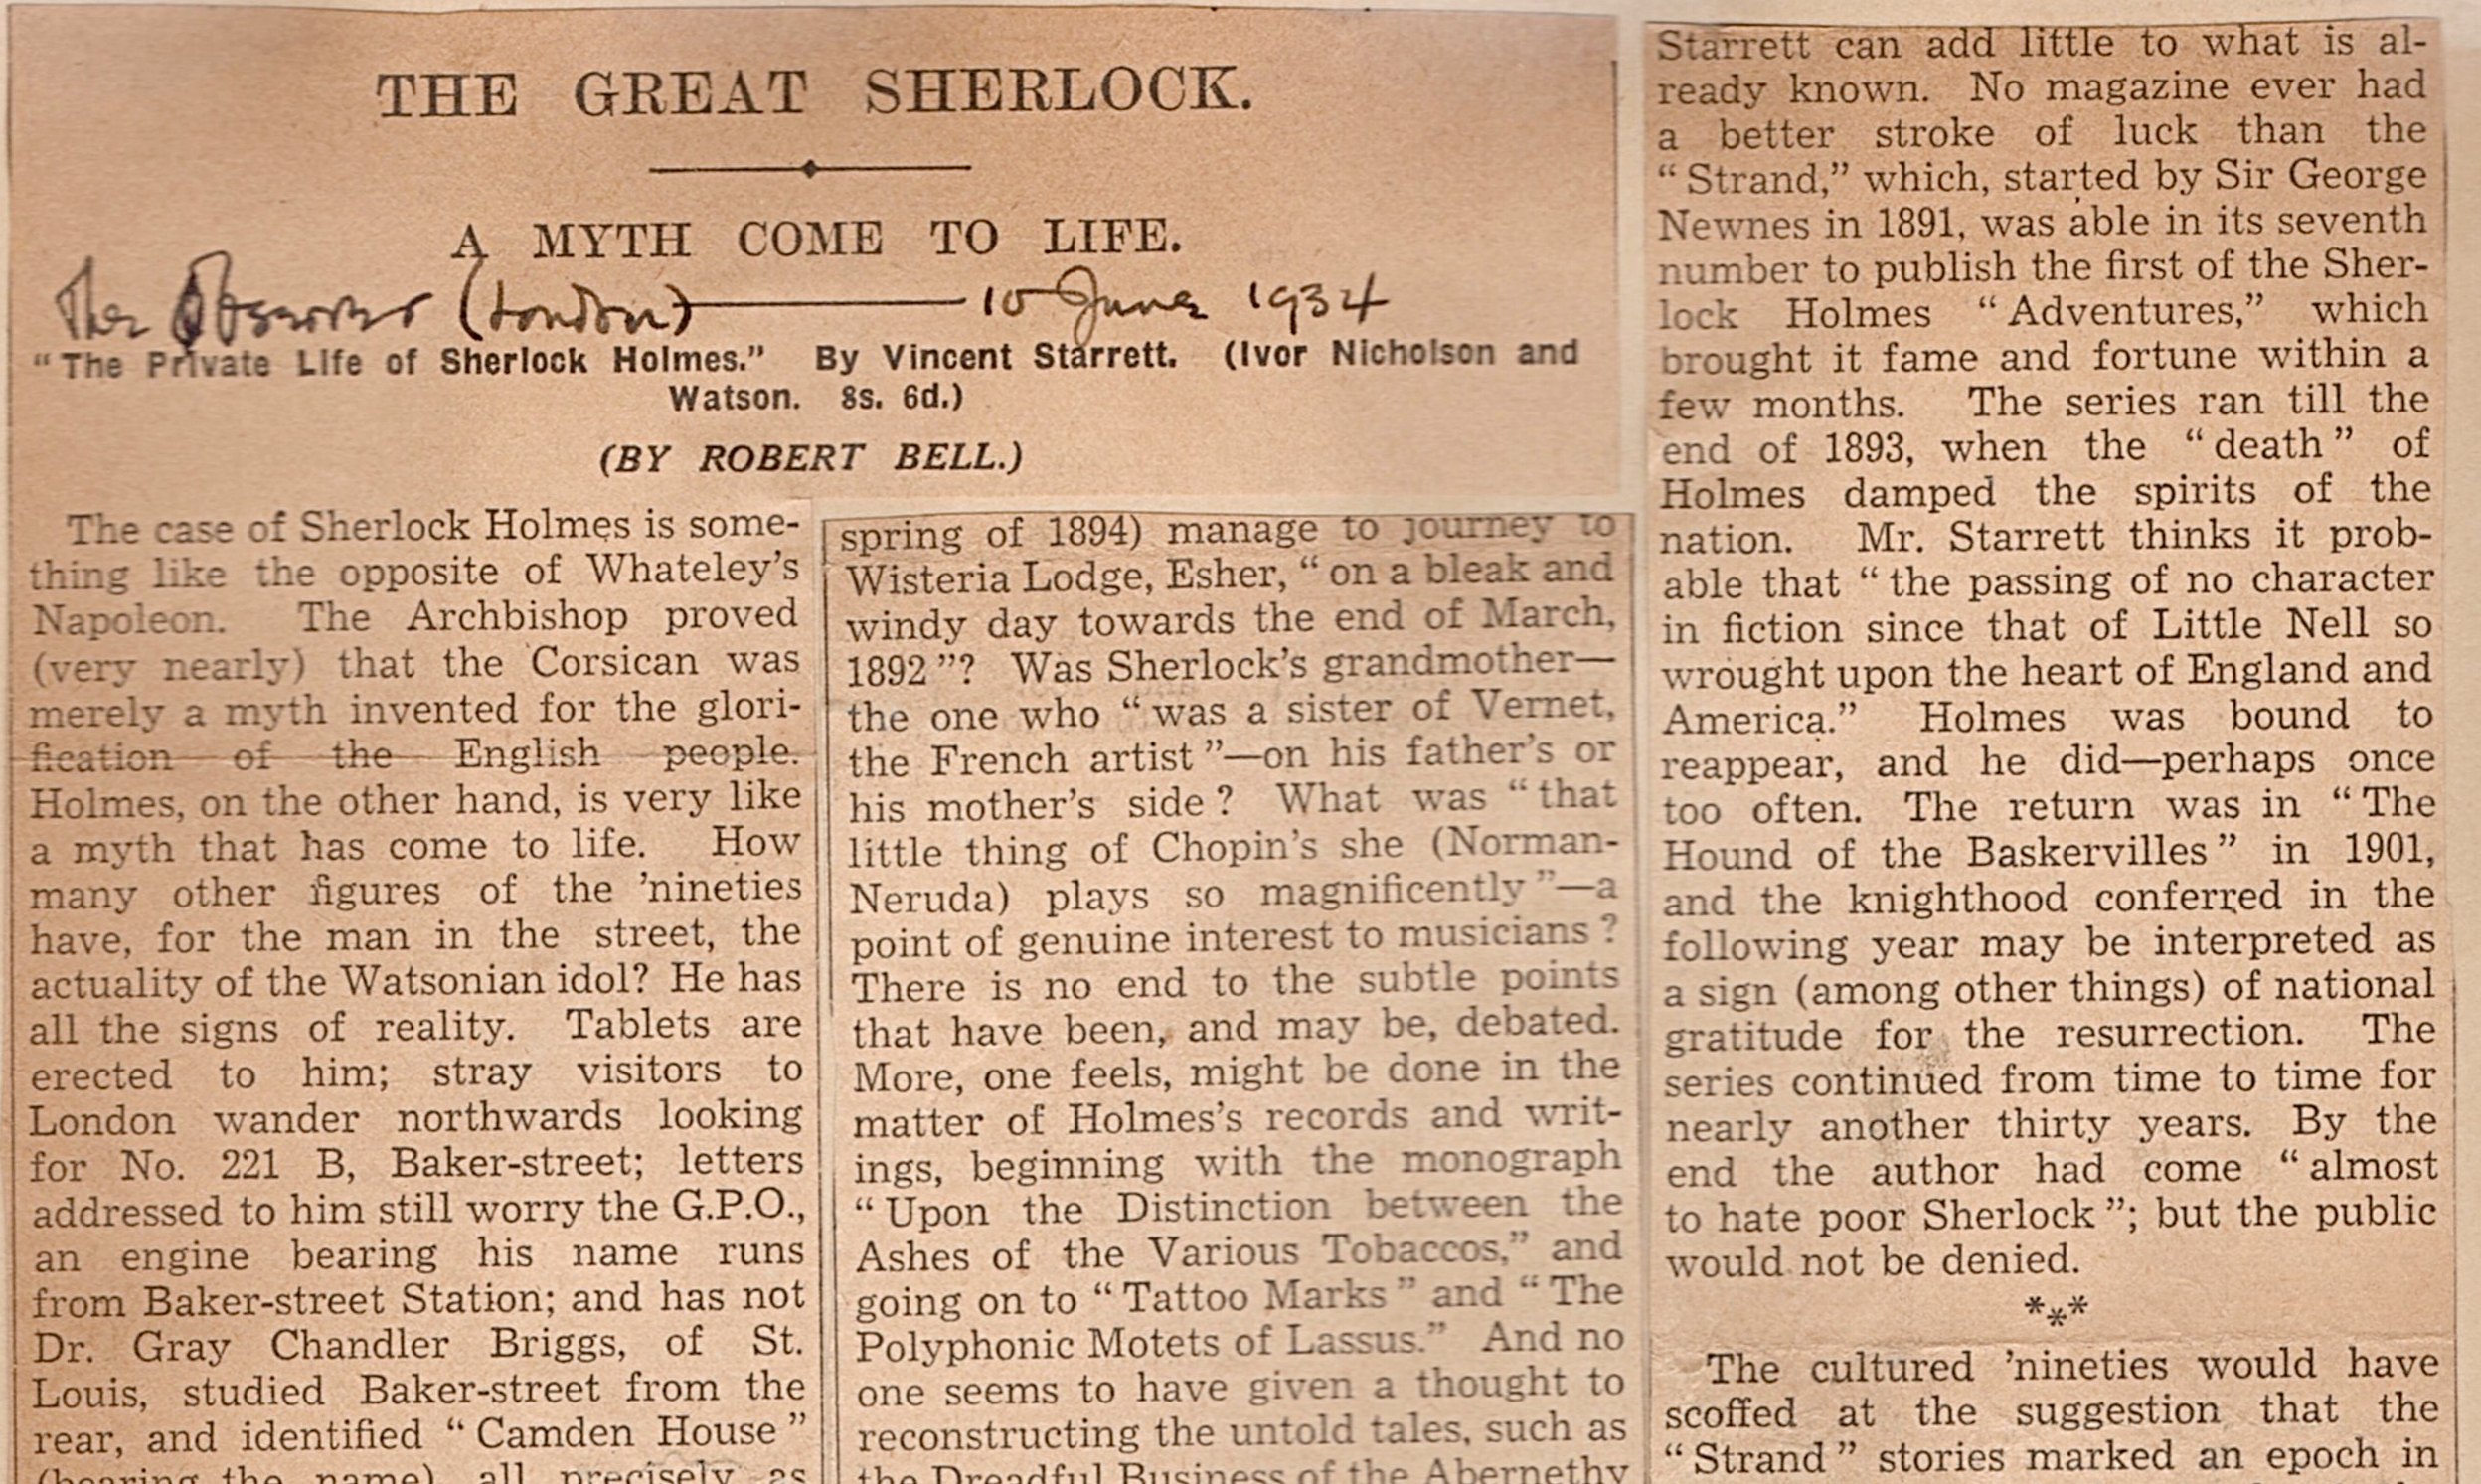 A portion of Robert Bell's extensive review, published in The Observer, one of London's oldest papers. This is one of several British clippings Starrett pasted into his personal scrapbook. The writing on the clipping is Starrett's.